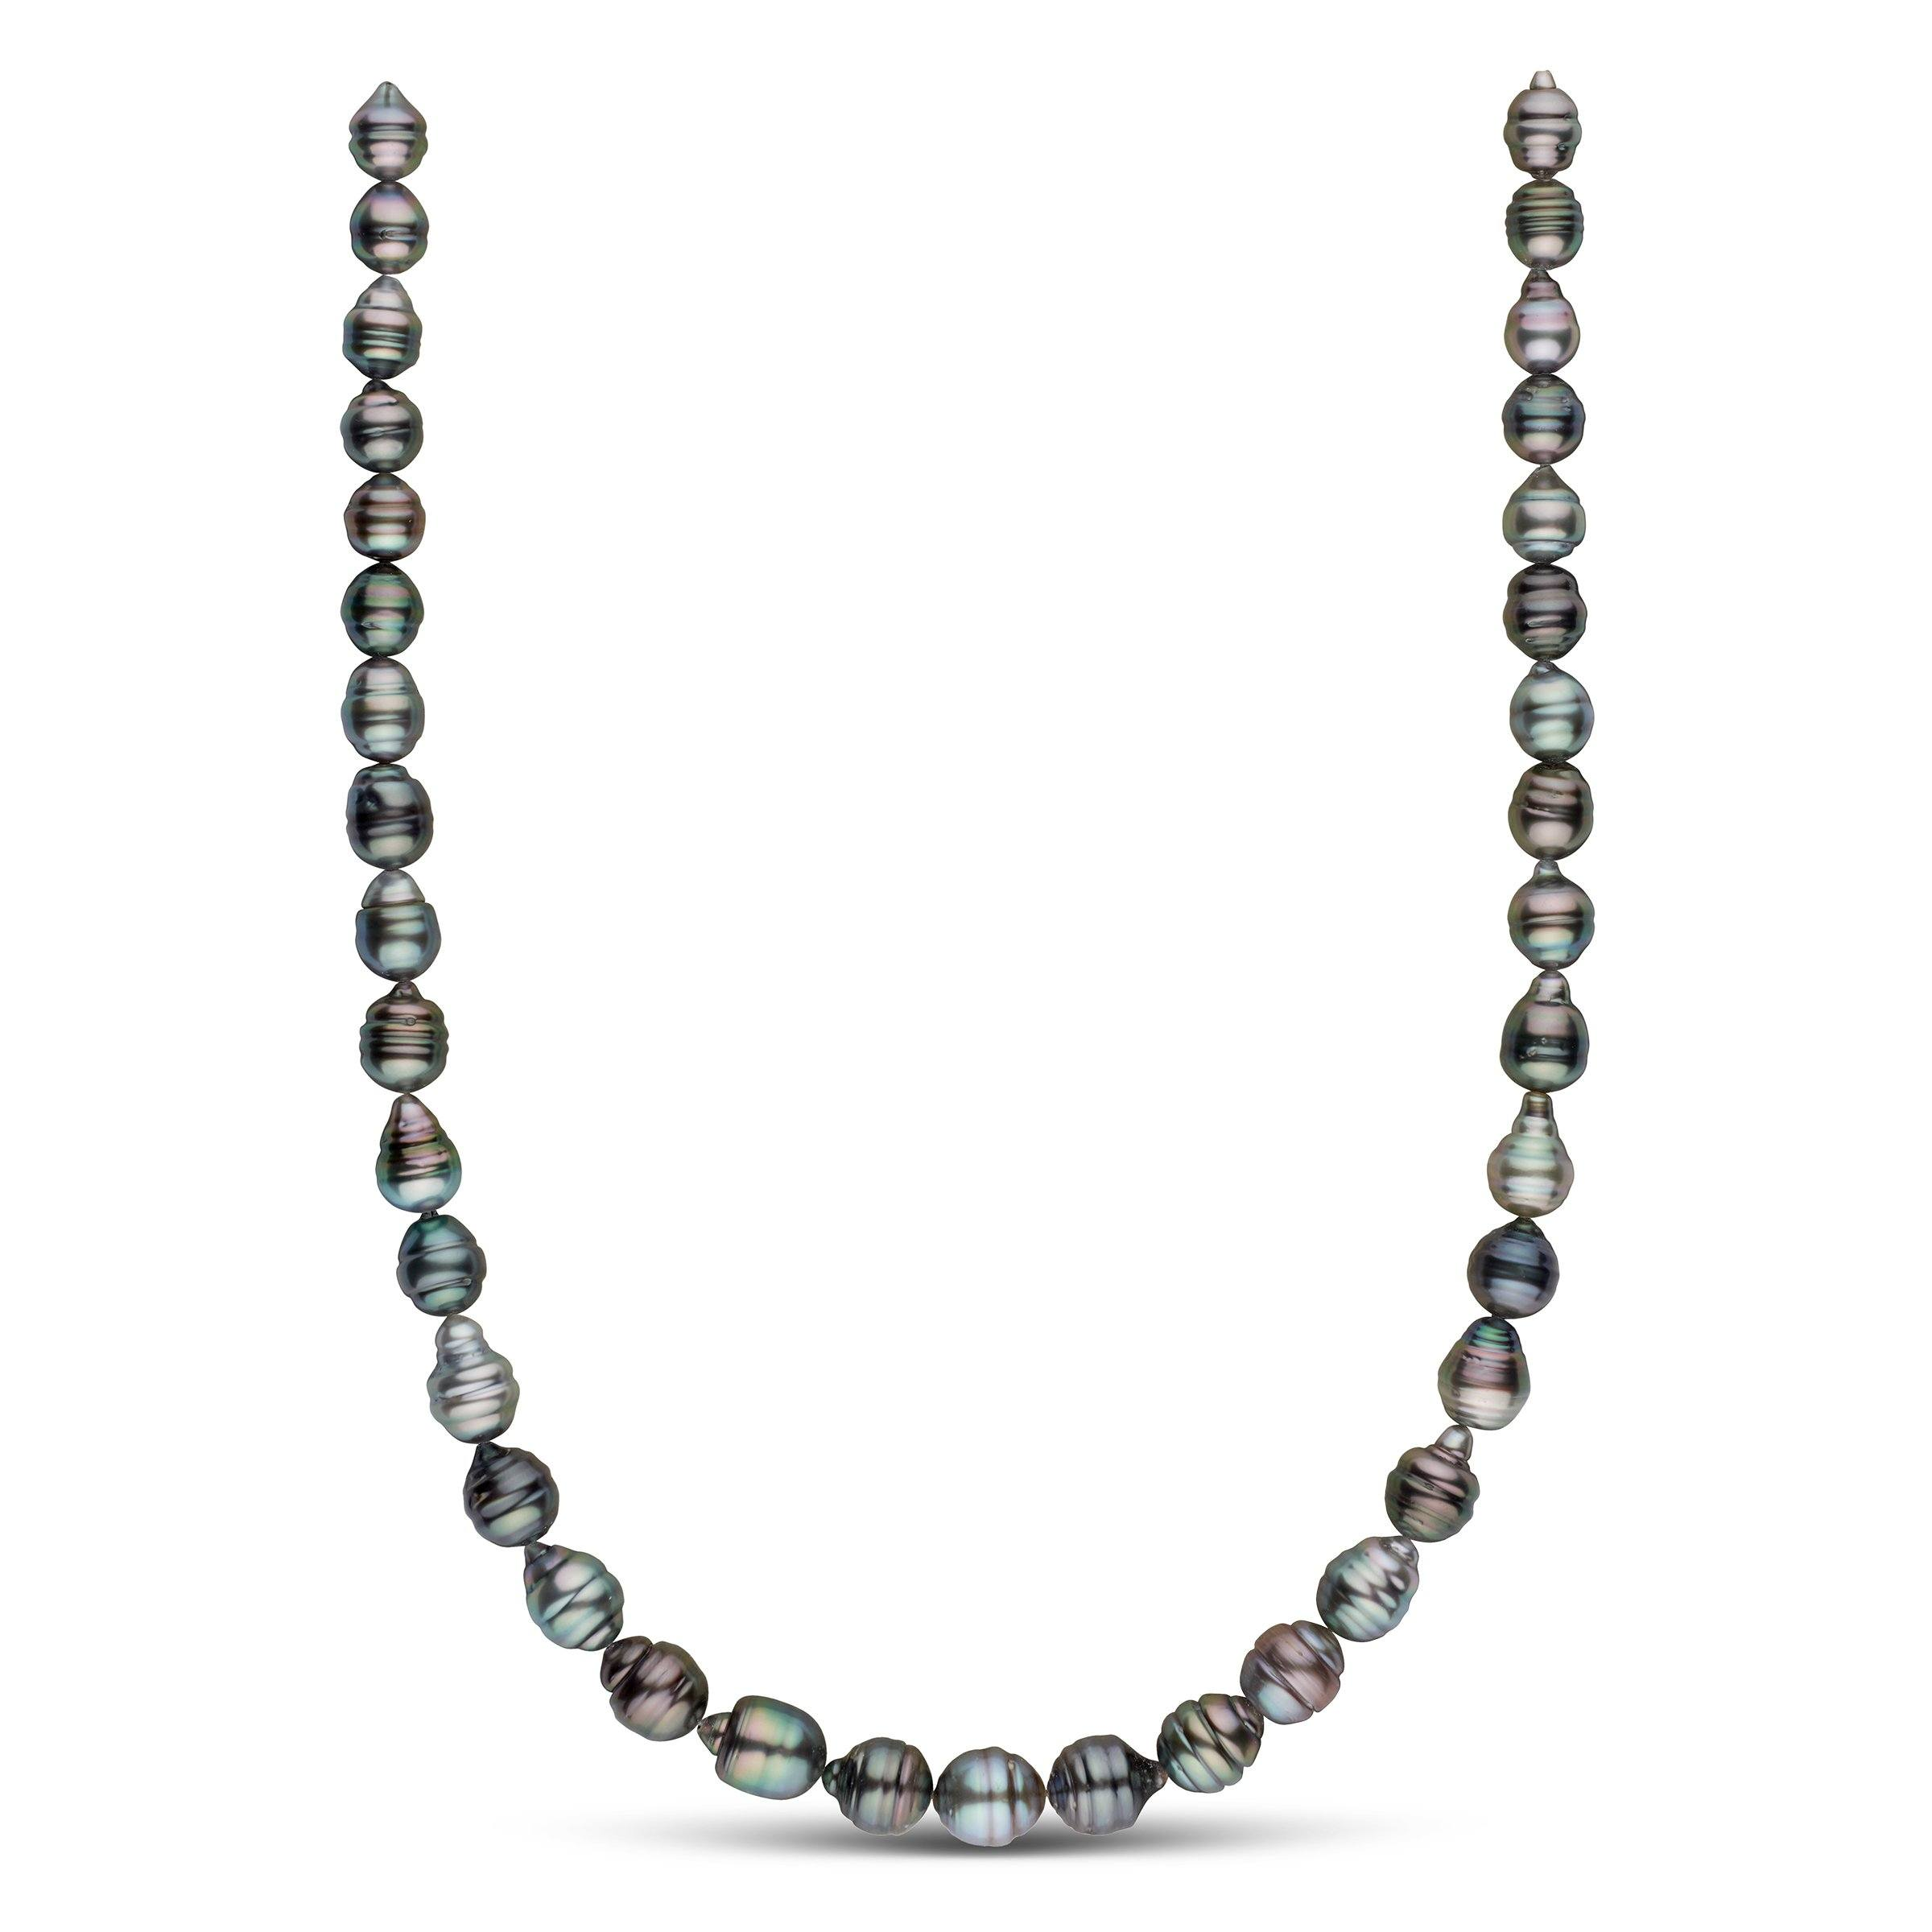 8.0-10.5 mm AA+ Tahitian Baroque Pearl Necklace